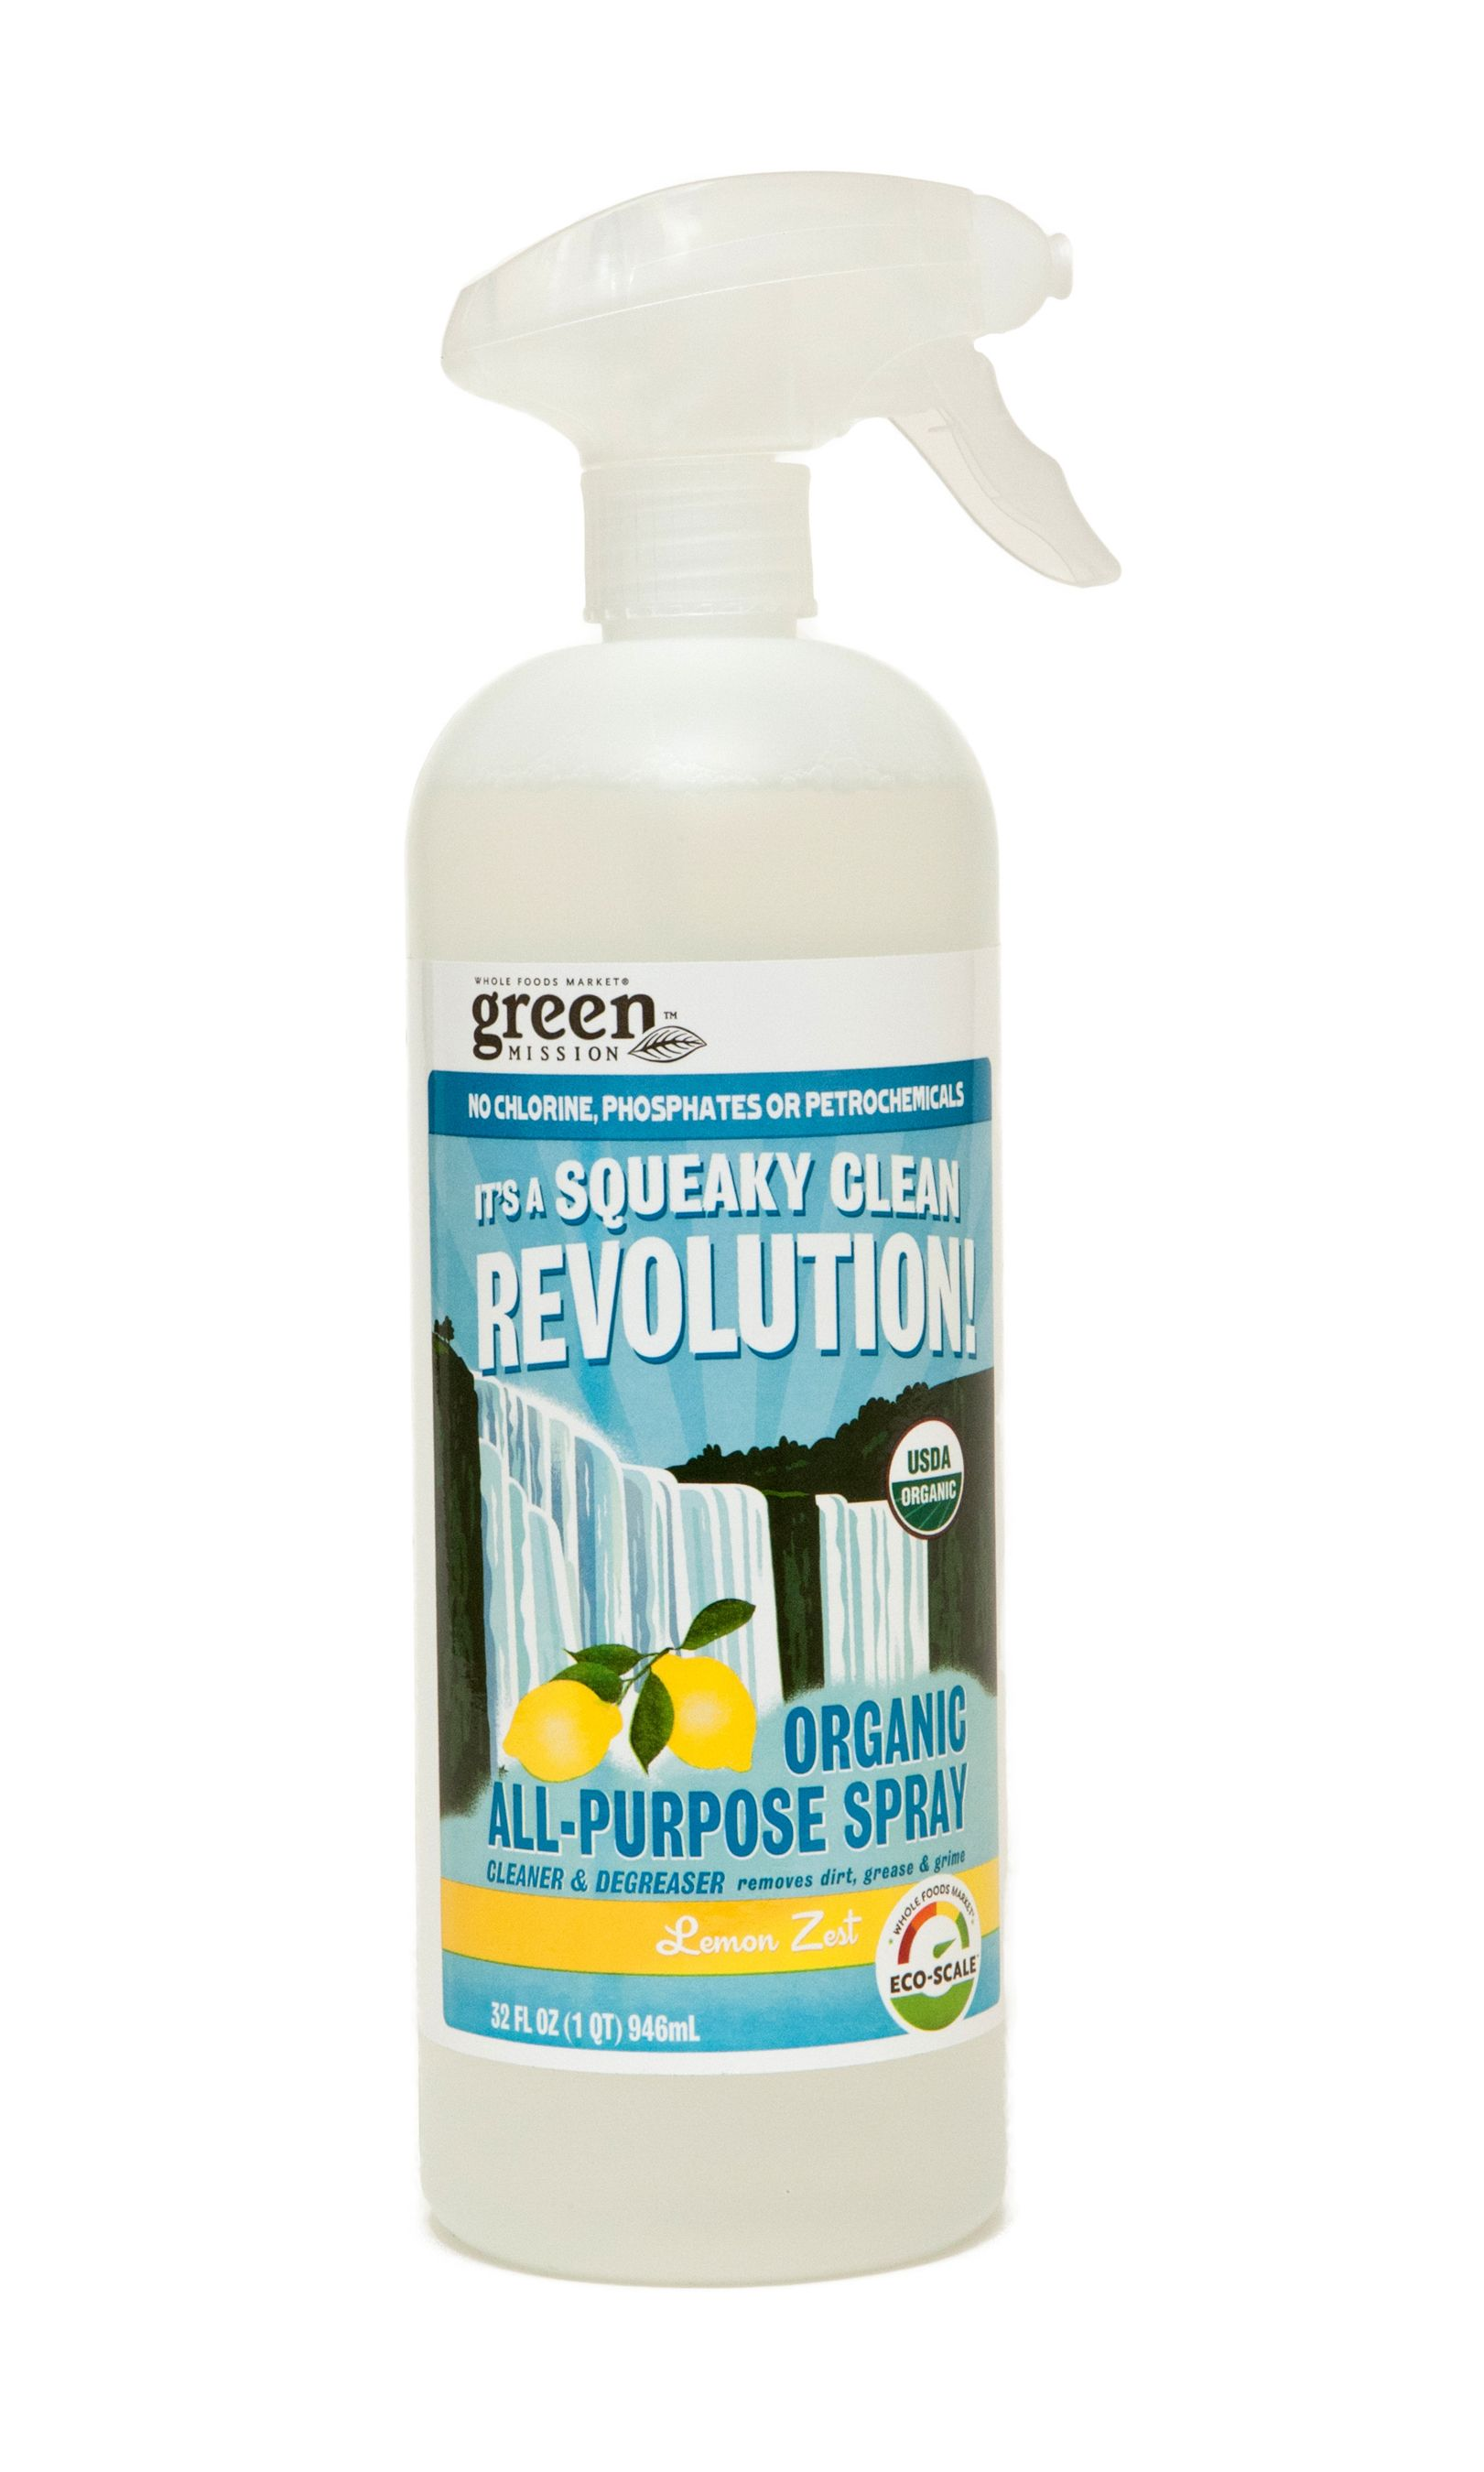 Eco Friendly Cleaning Products At Whole Foods By Green Mission